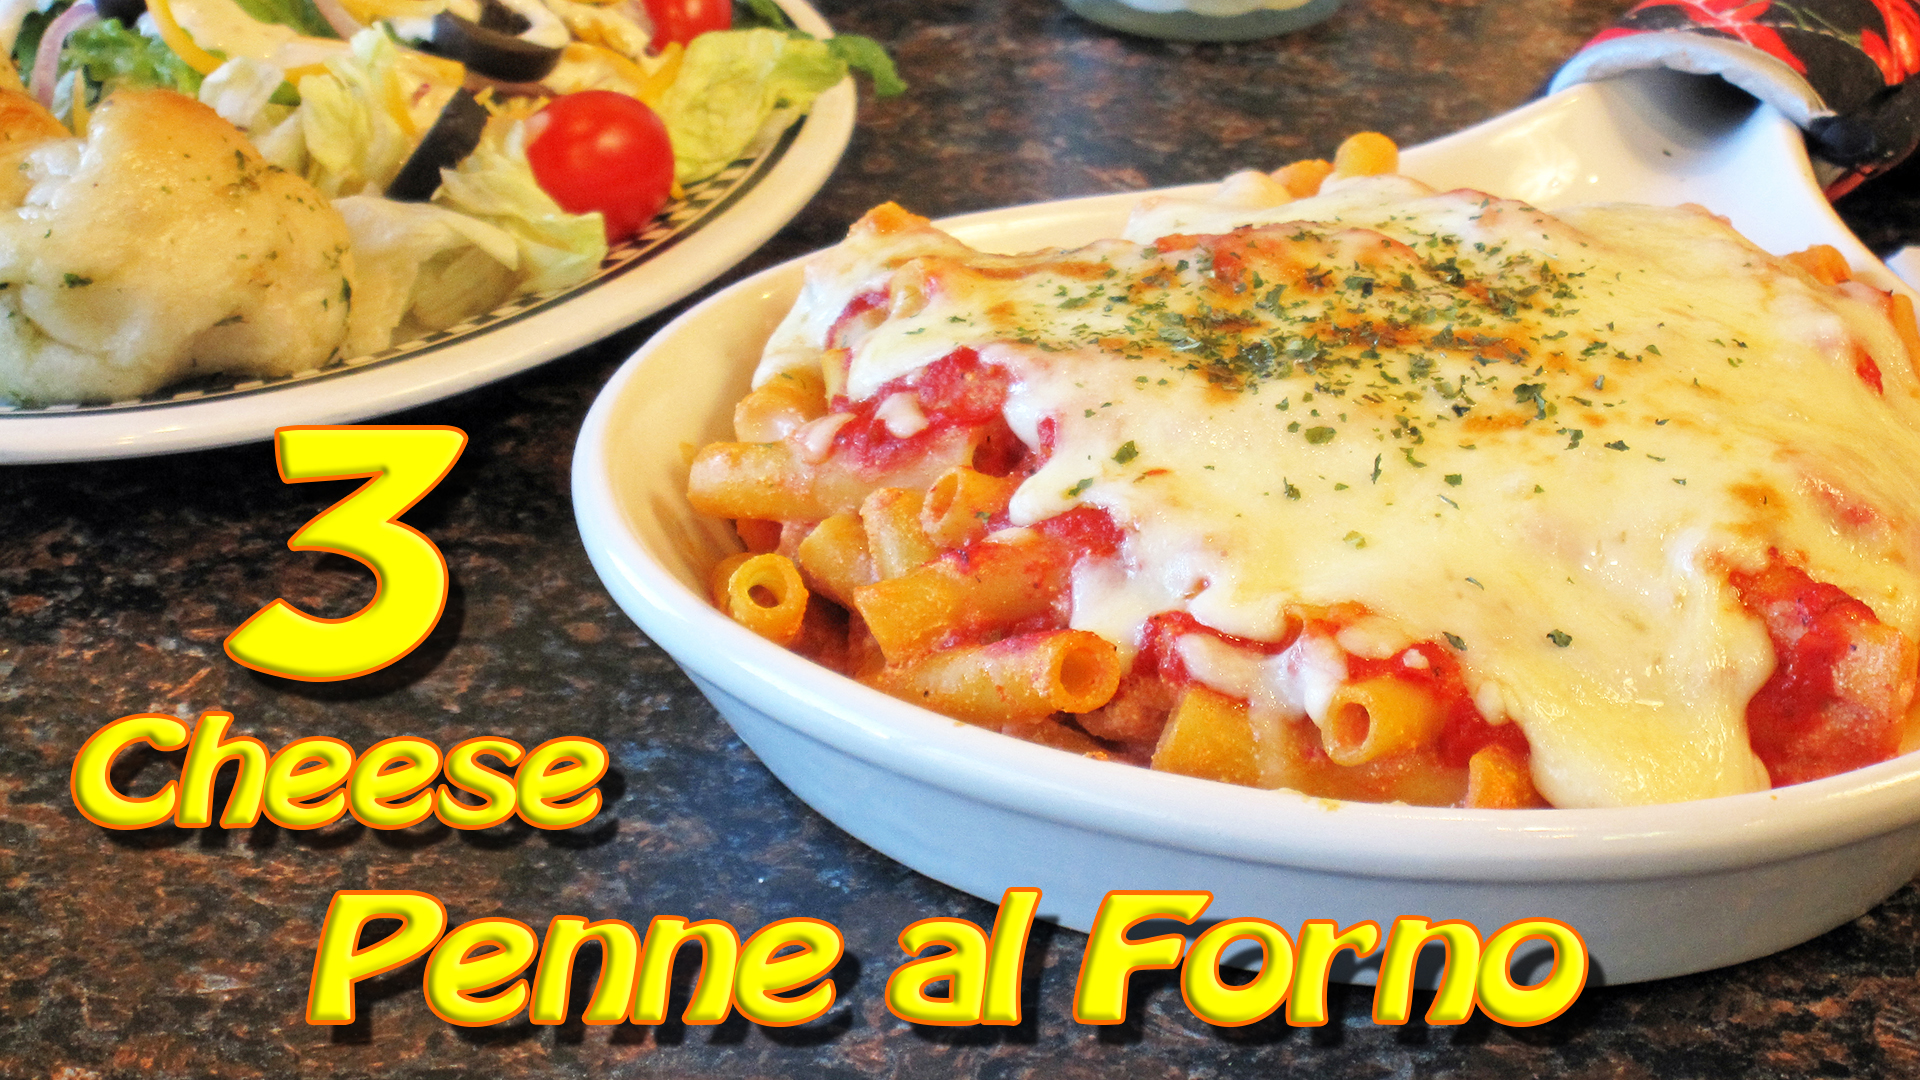 3 Cheese Penna Al Forno